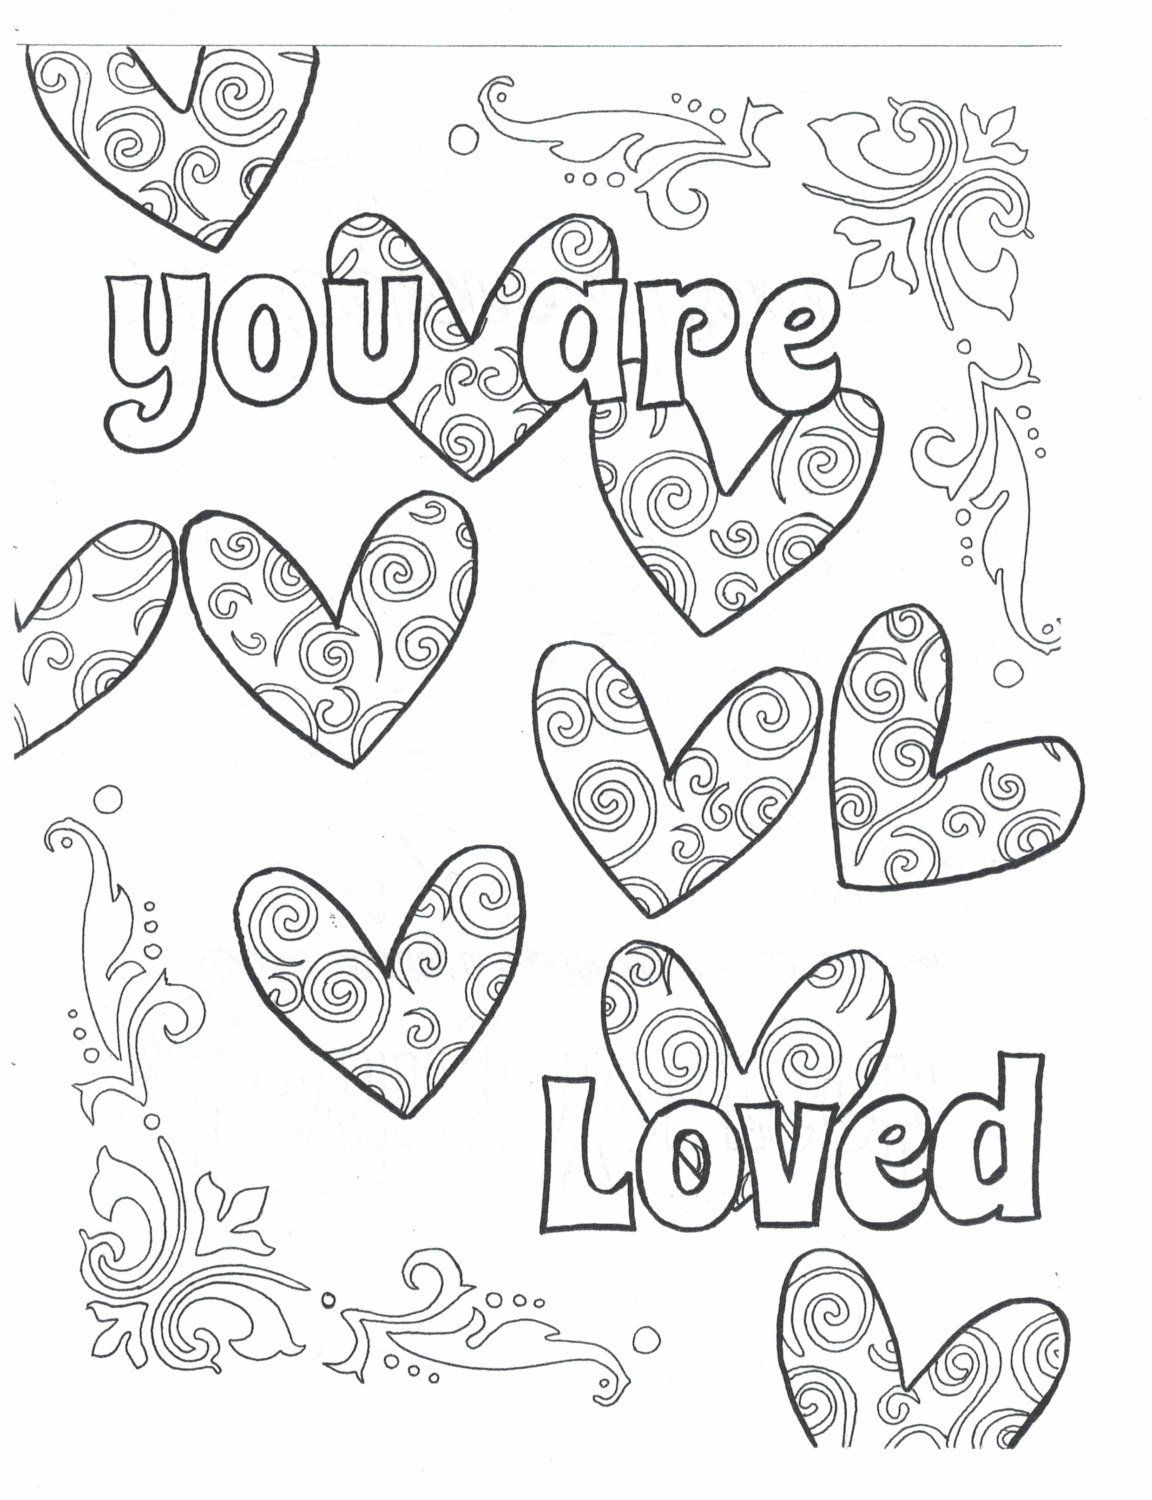 You Are Loved Coloring Page Etsy Valentine Coloring Pages Love Coloring Pages Quote Coloring Pages